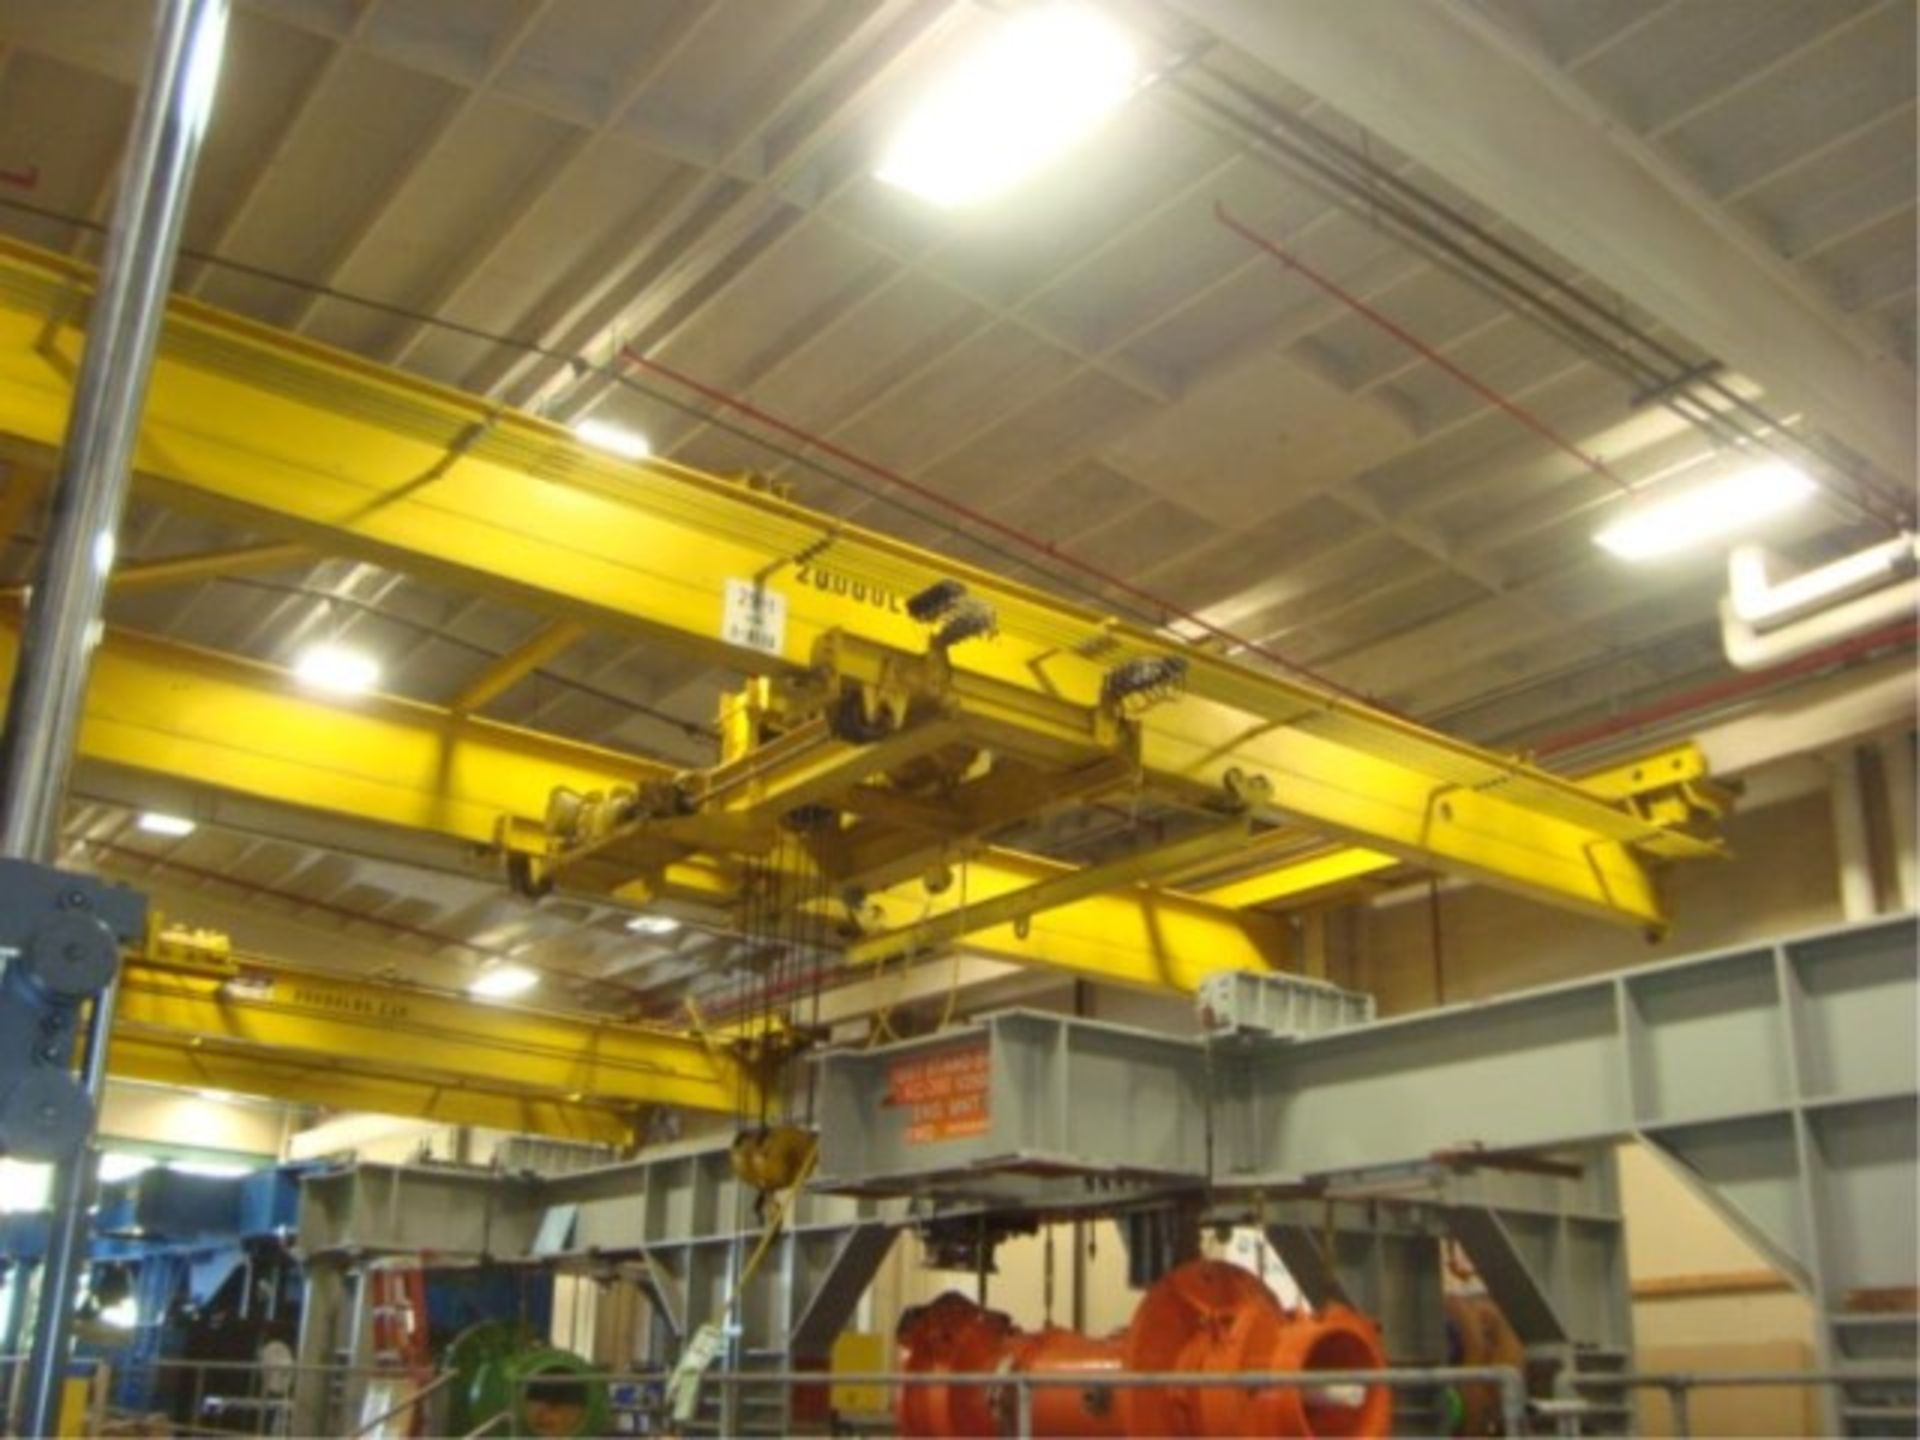 Lot 115 - 10-Ton Capacity Overhead Bridge Crane